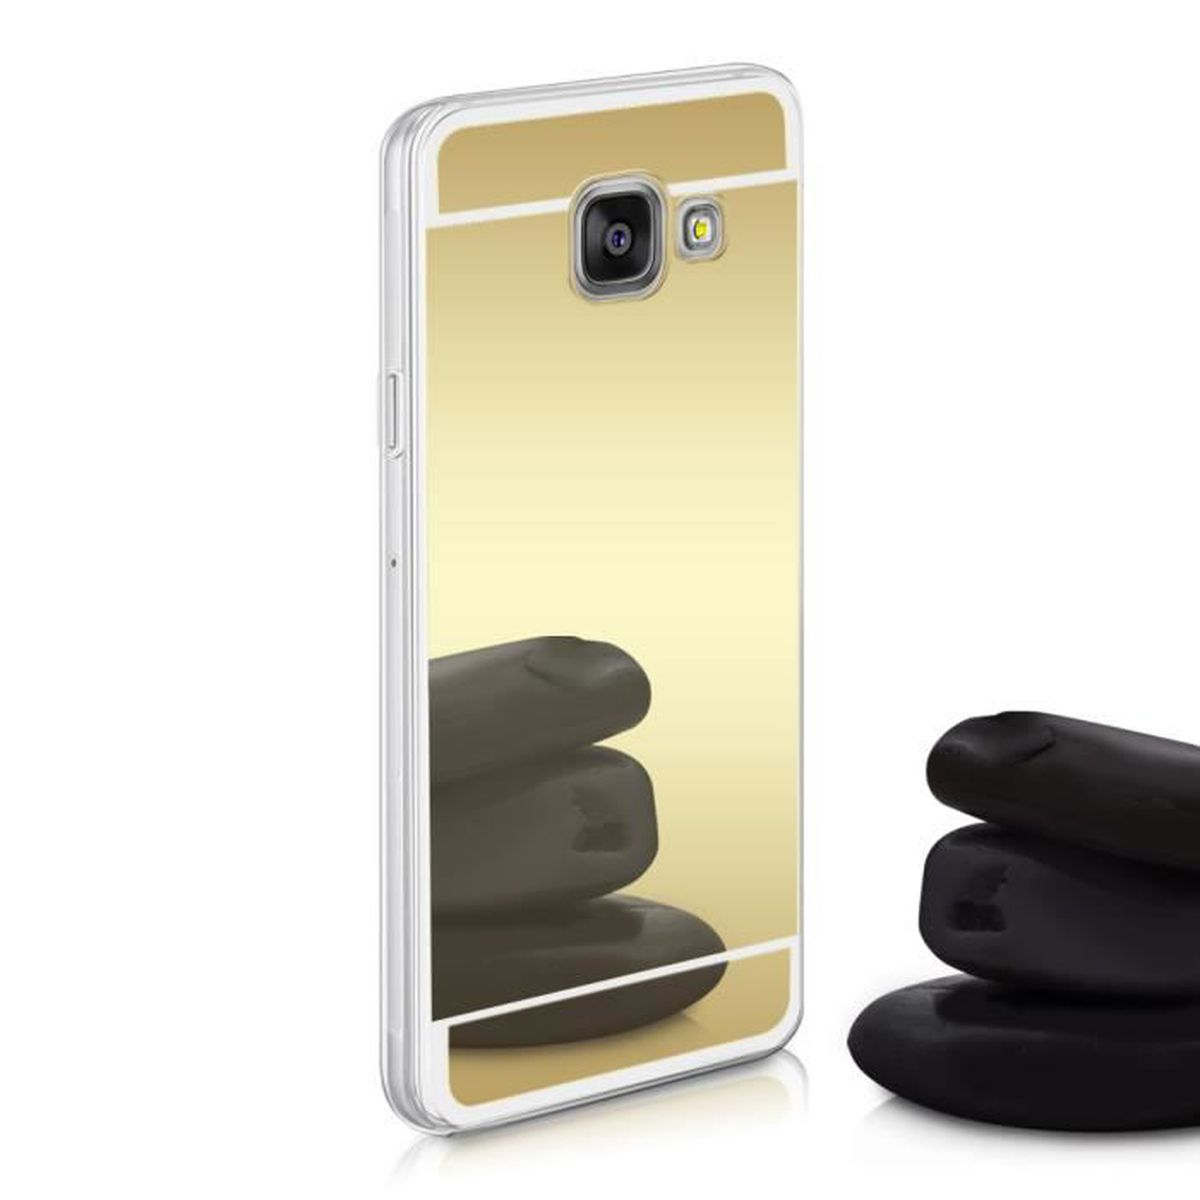 kwmobile housse miroir pour samsung galaxy a3 2016 tui. Black Bedroom Furniture Sets. Home Design Ideas